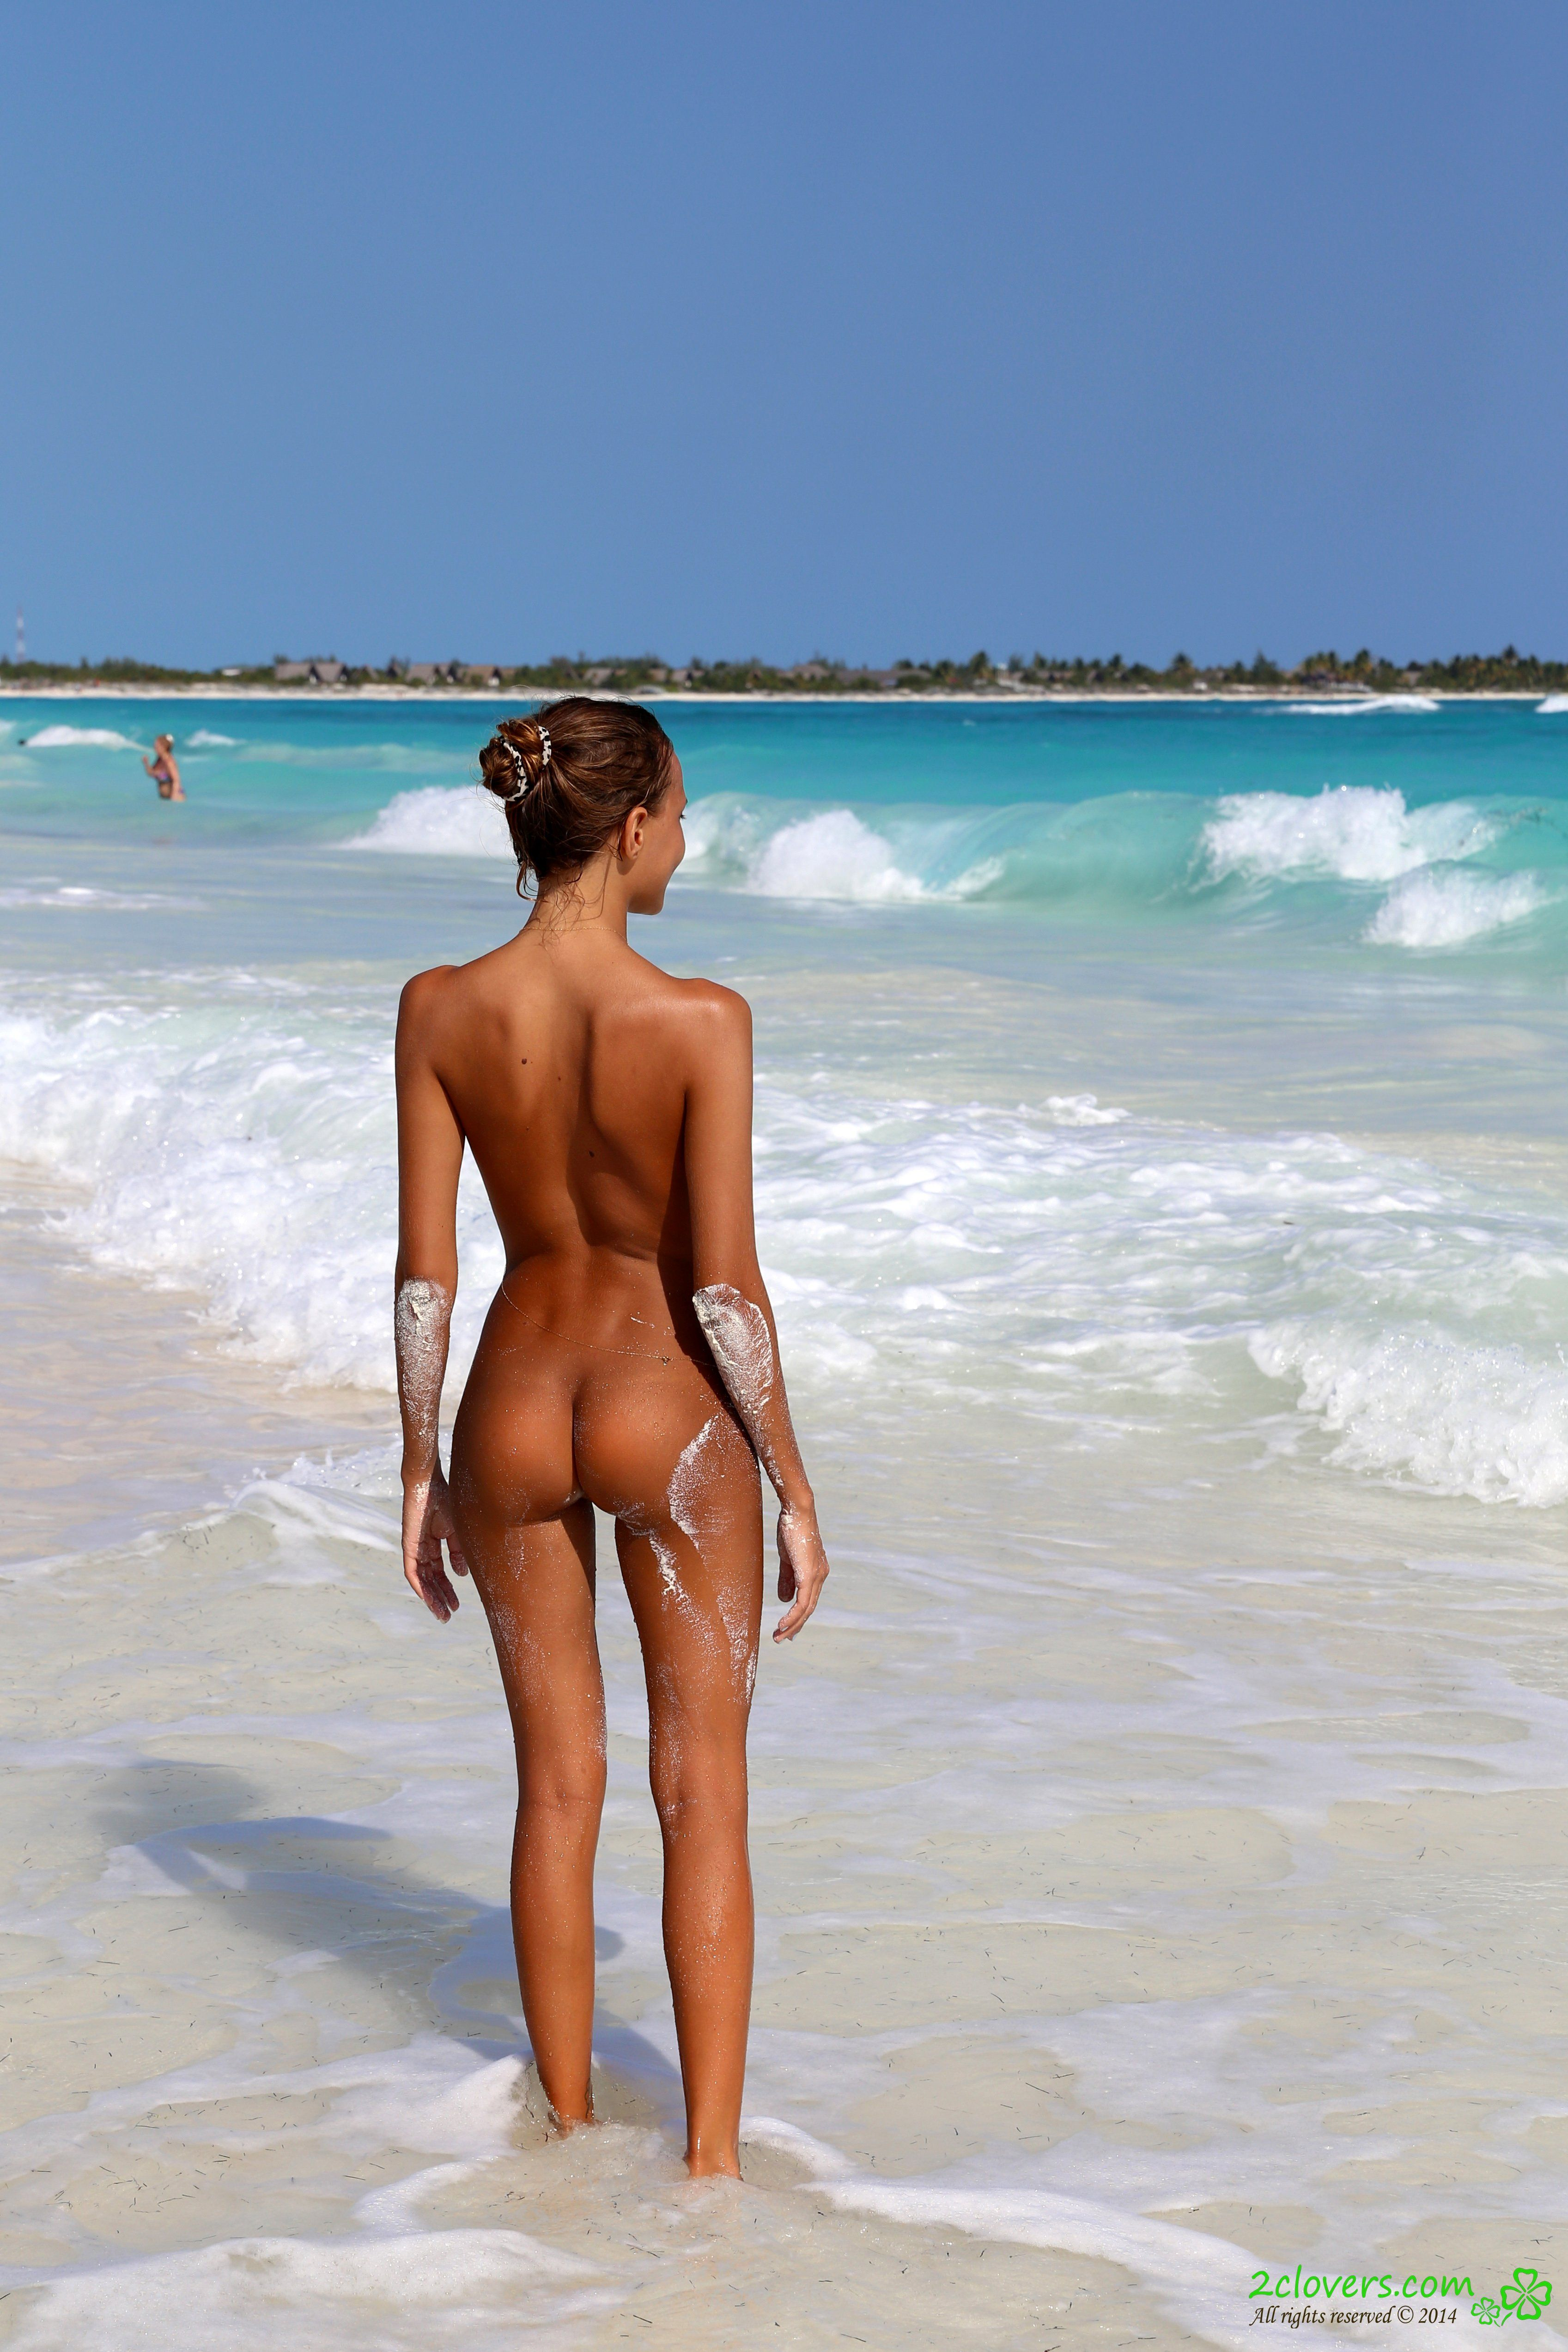 For katya clover nude beach not give